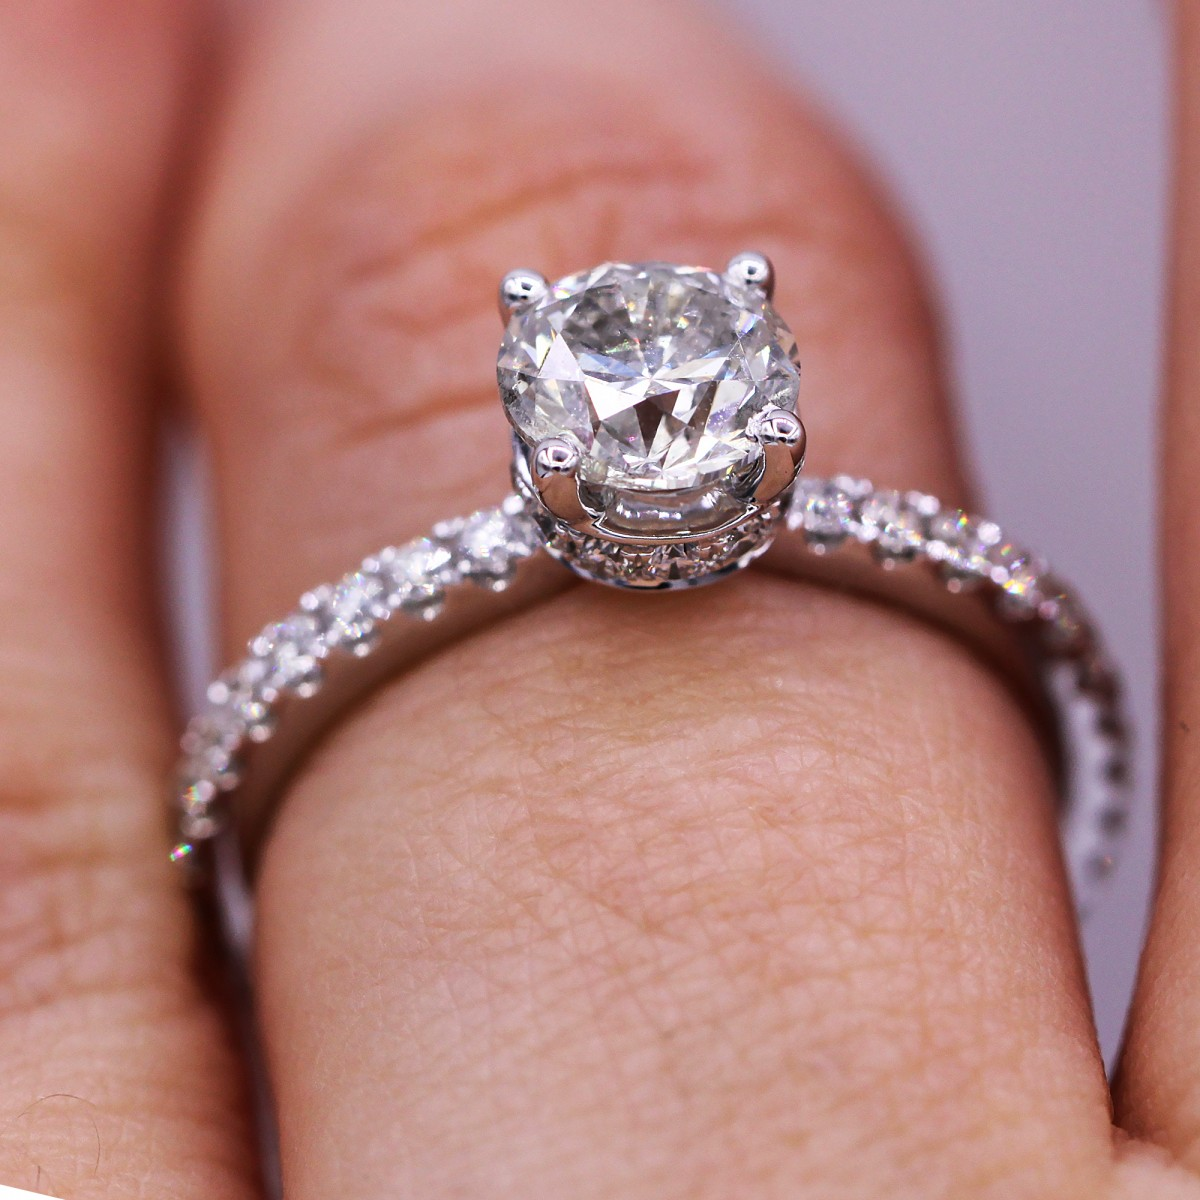 Classic and timeless 1.08 carat round cut diamond ring